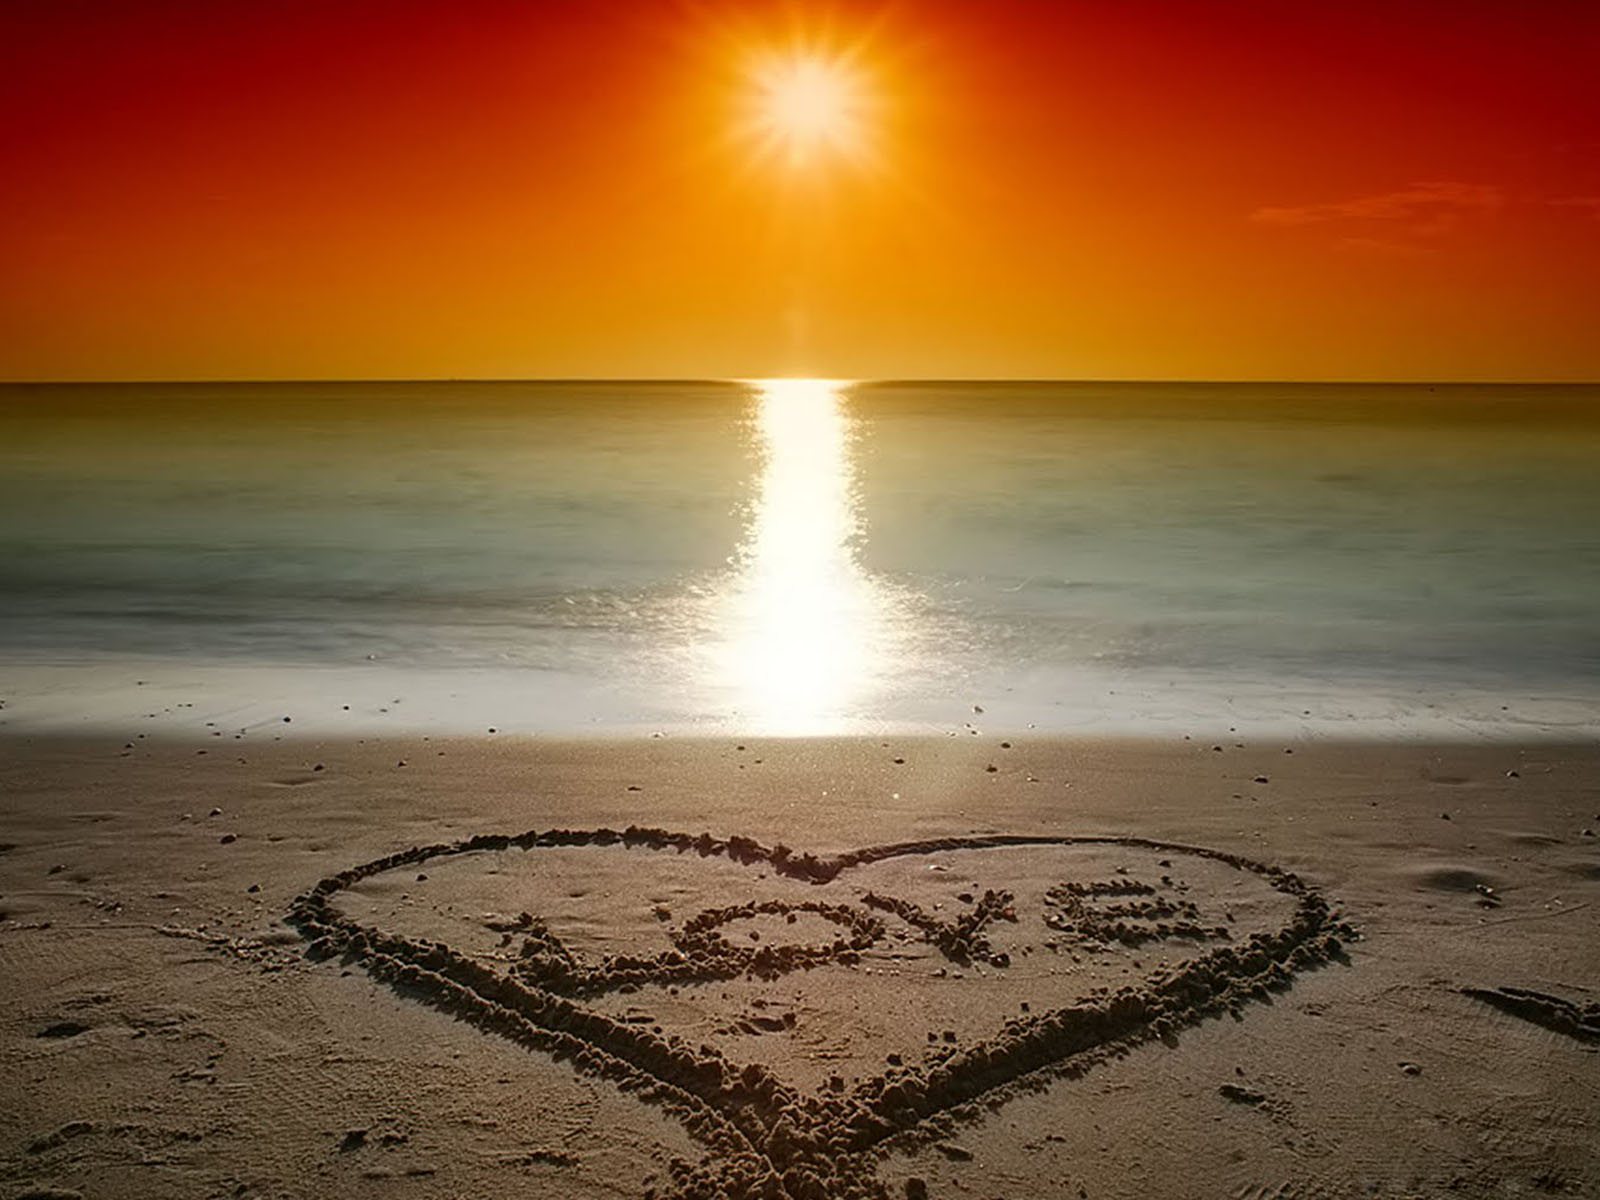 Beach Love Sunset   the sand love sunset at beach   Beach Love Sunset 1600x1200